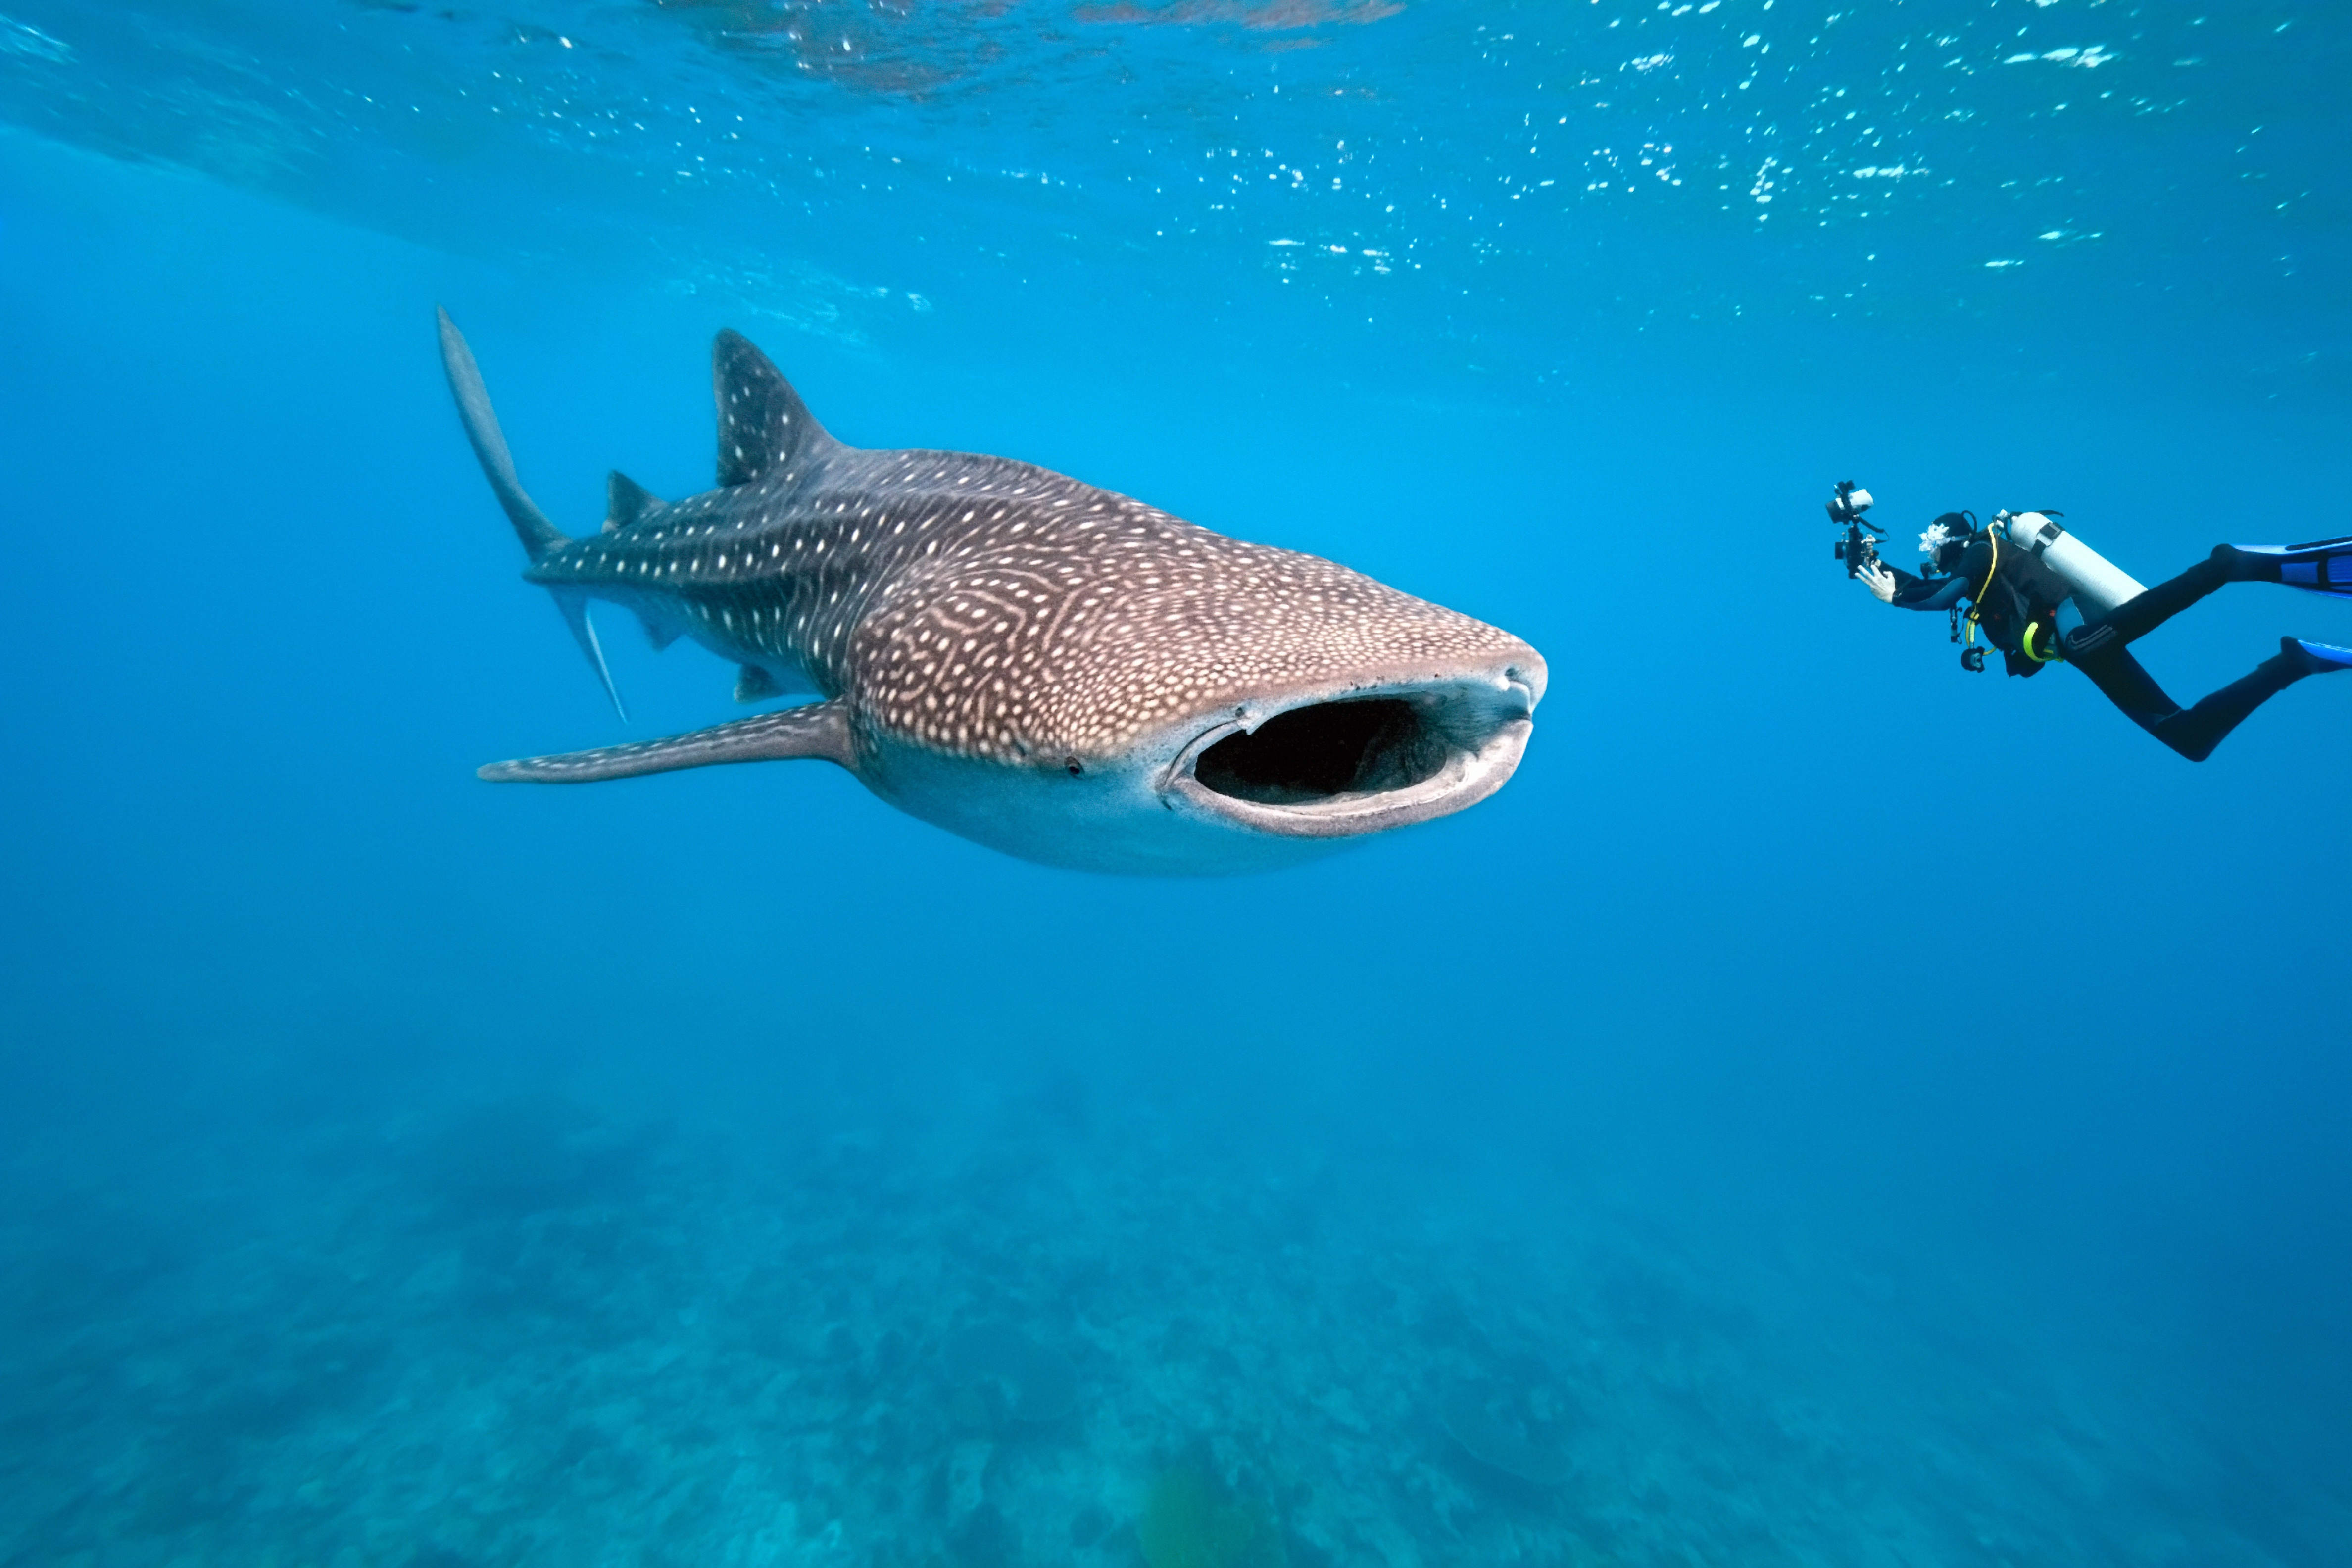 A diver, face to face with a whale shark. © Krzysztof Odziomek